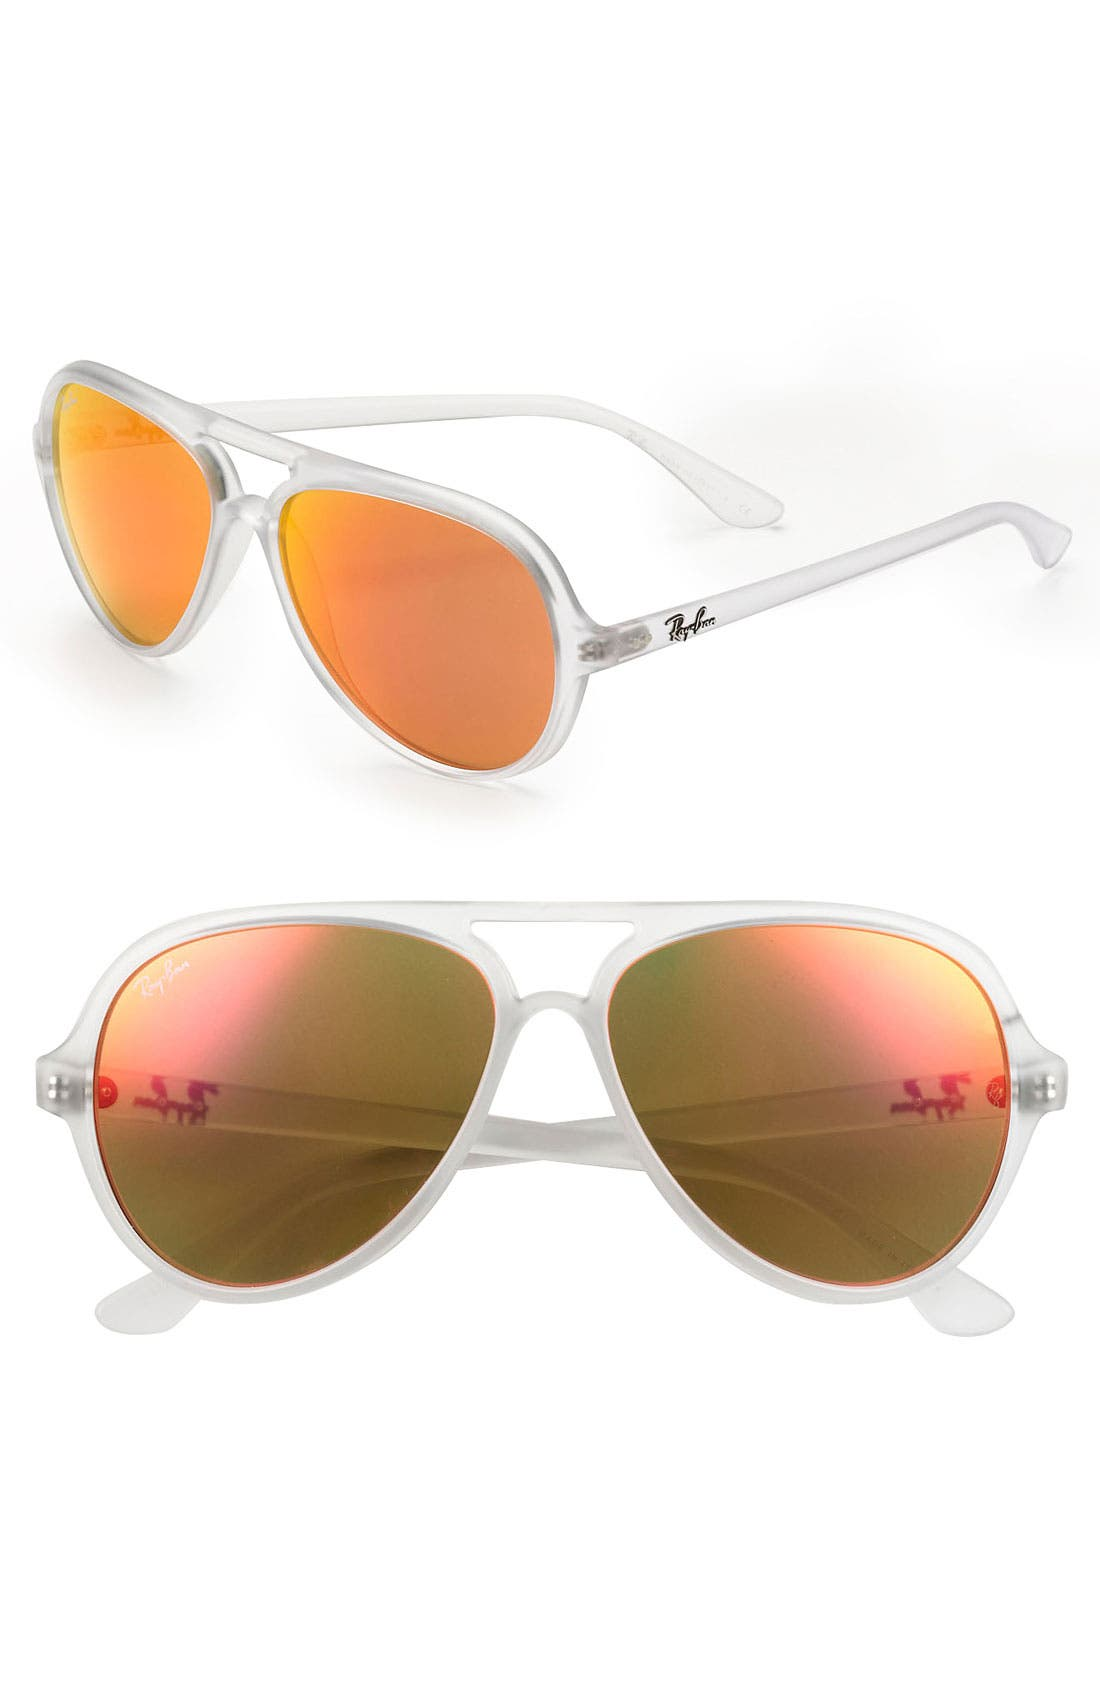 Main Image - Ray-Ban 59mm Aviator Sunglasses